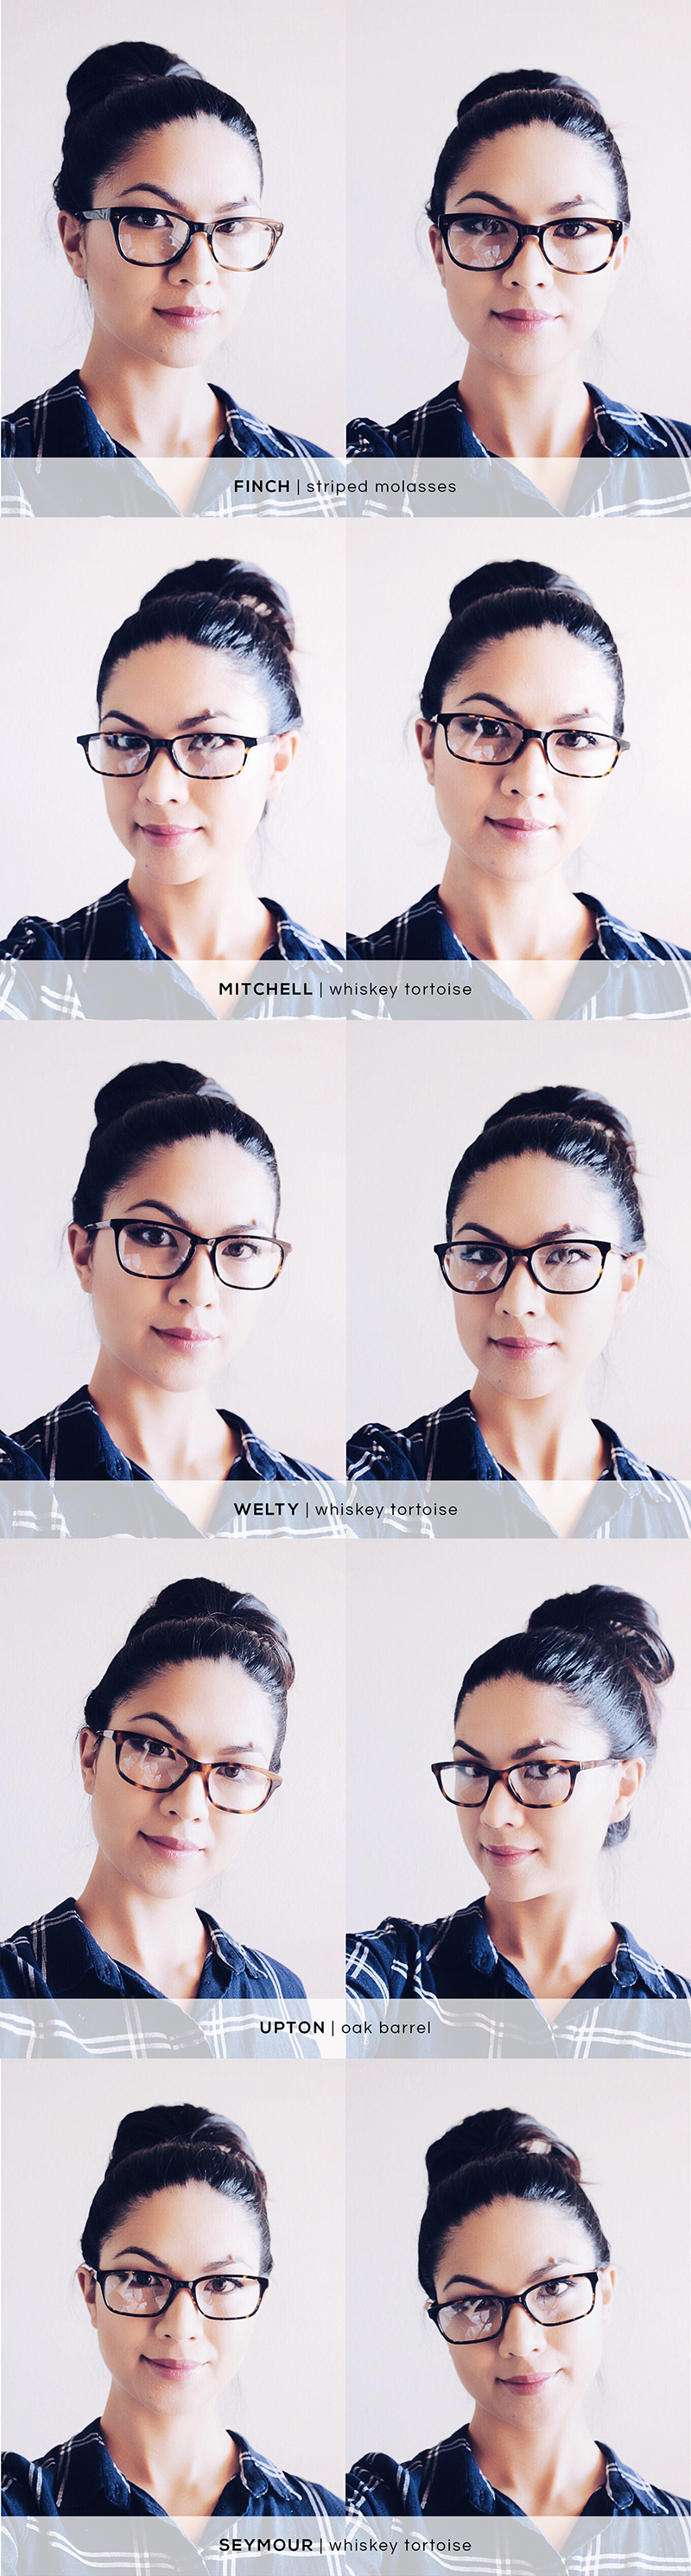 Warby Parker Home Try-On - Finch, Mitchell, Welty, Upton, Seymour | HelloLovelyLiving.com